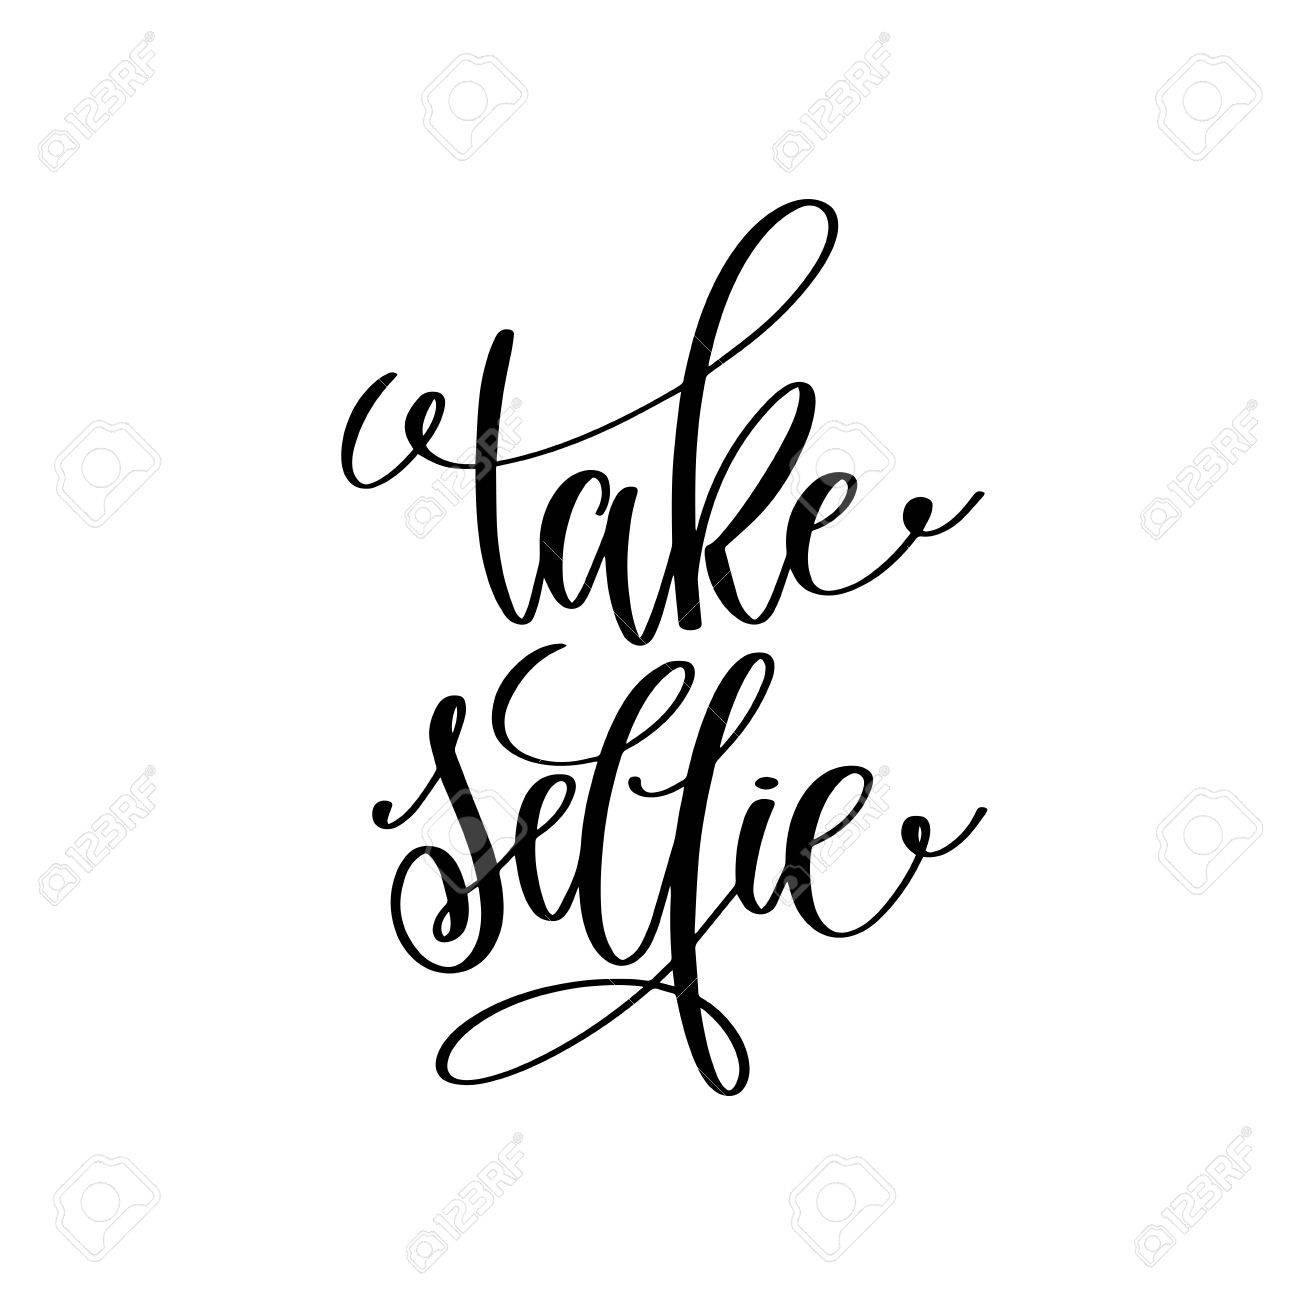 Take selfie black and white handwritten lettering quote stock vector 82407524